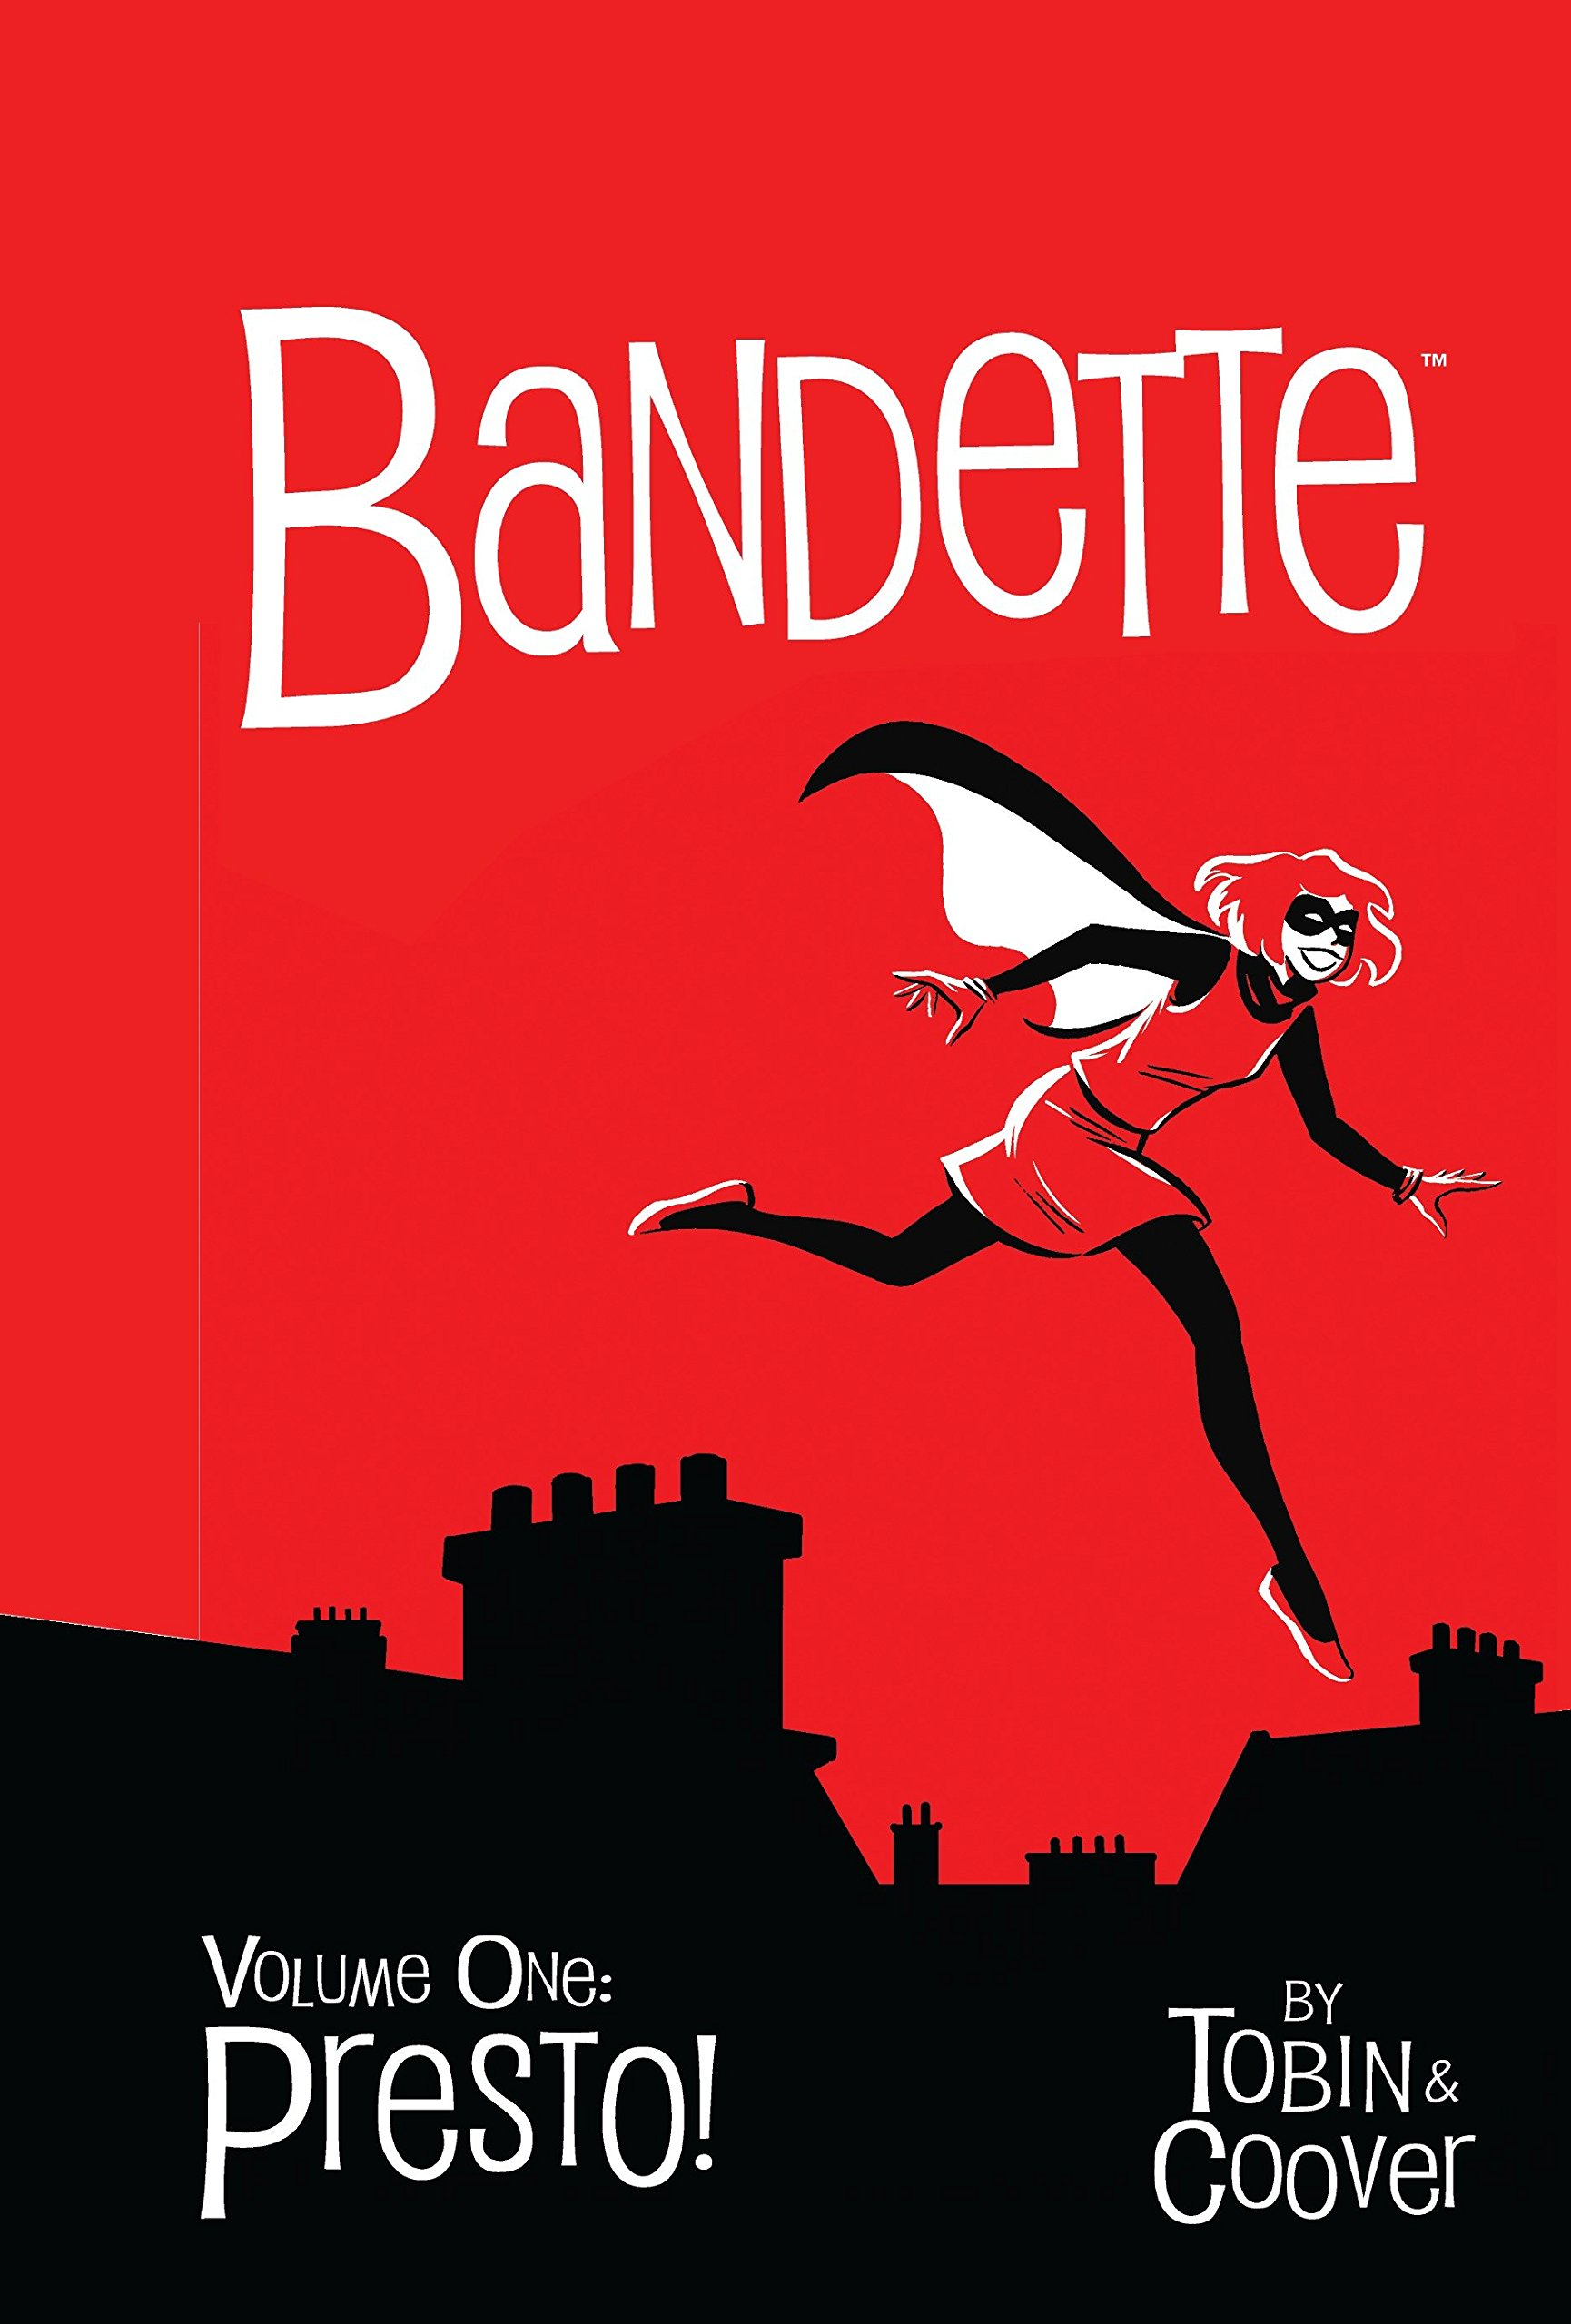 Image result for bANDETTE